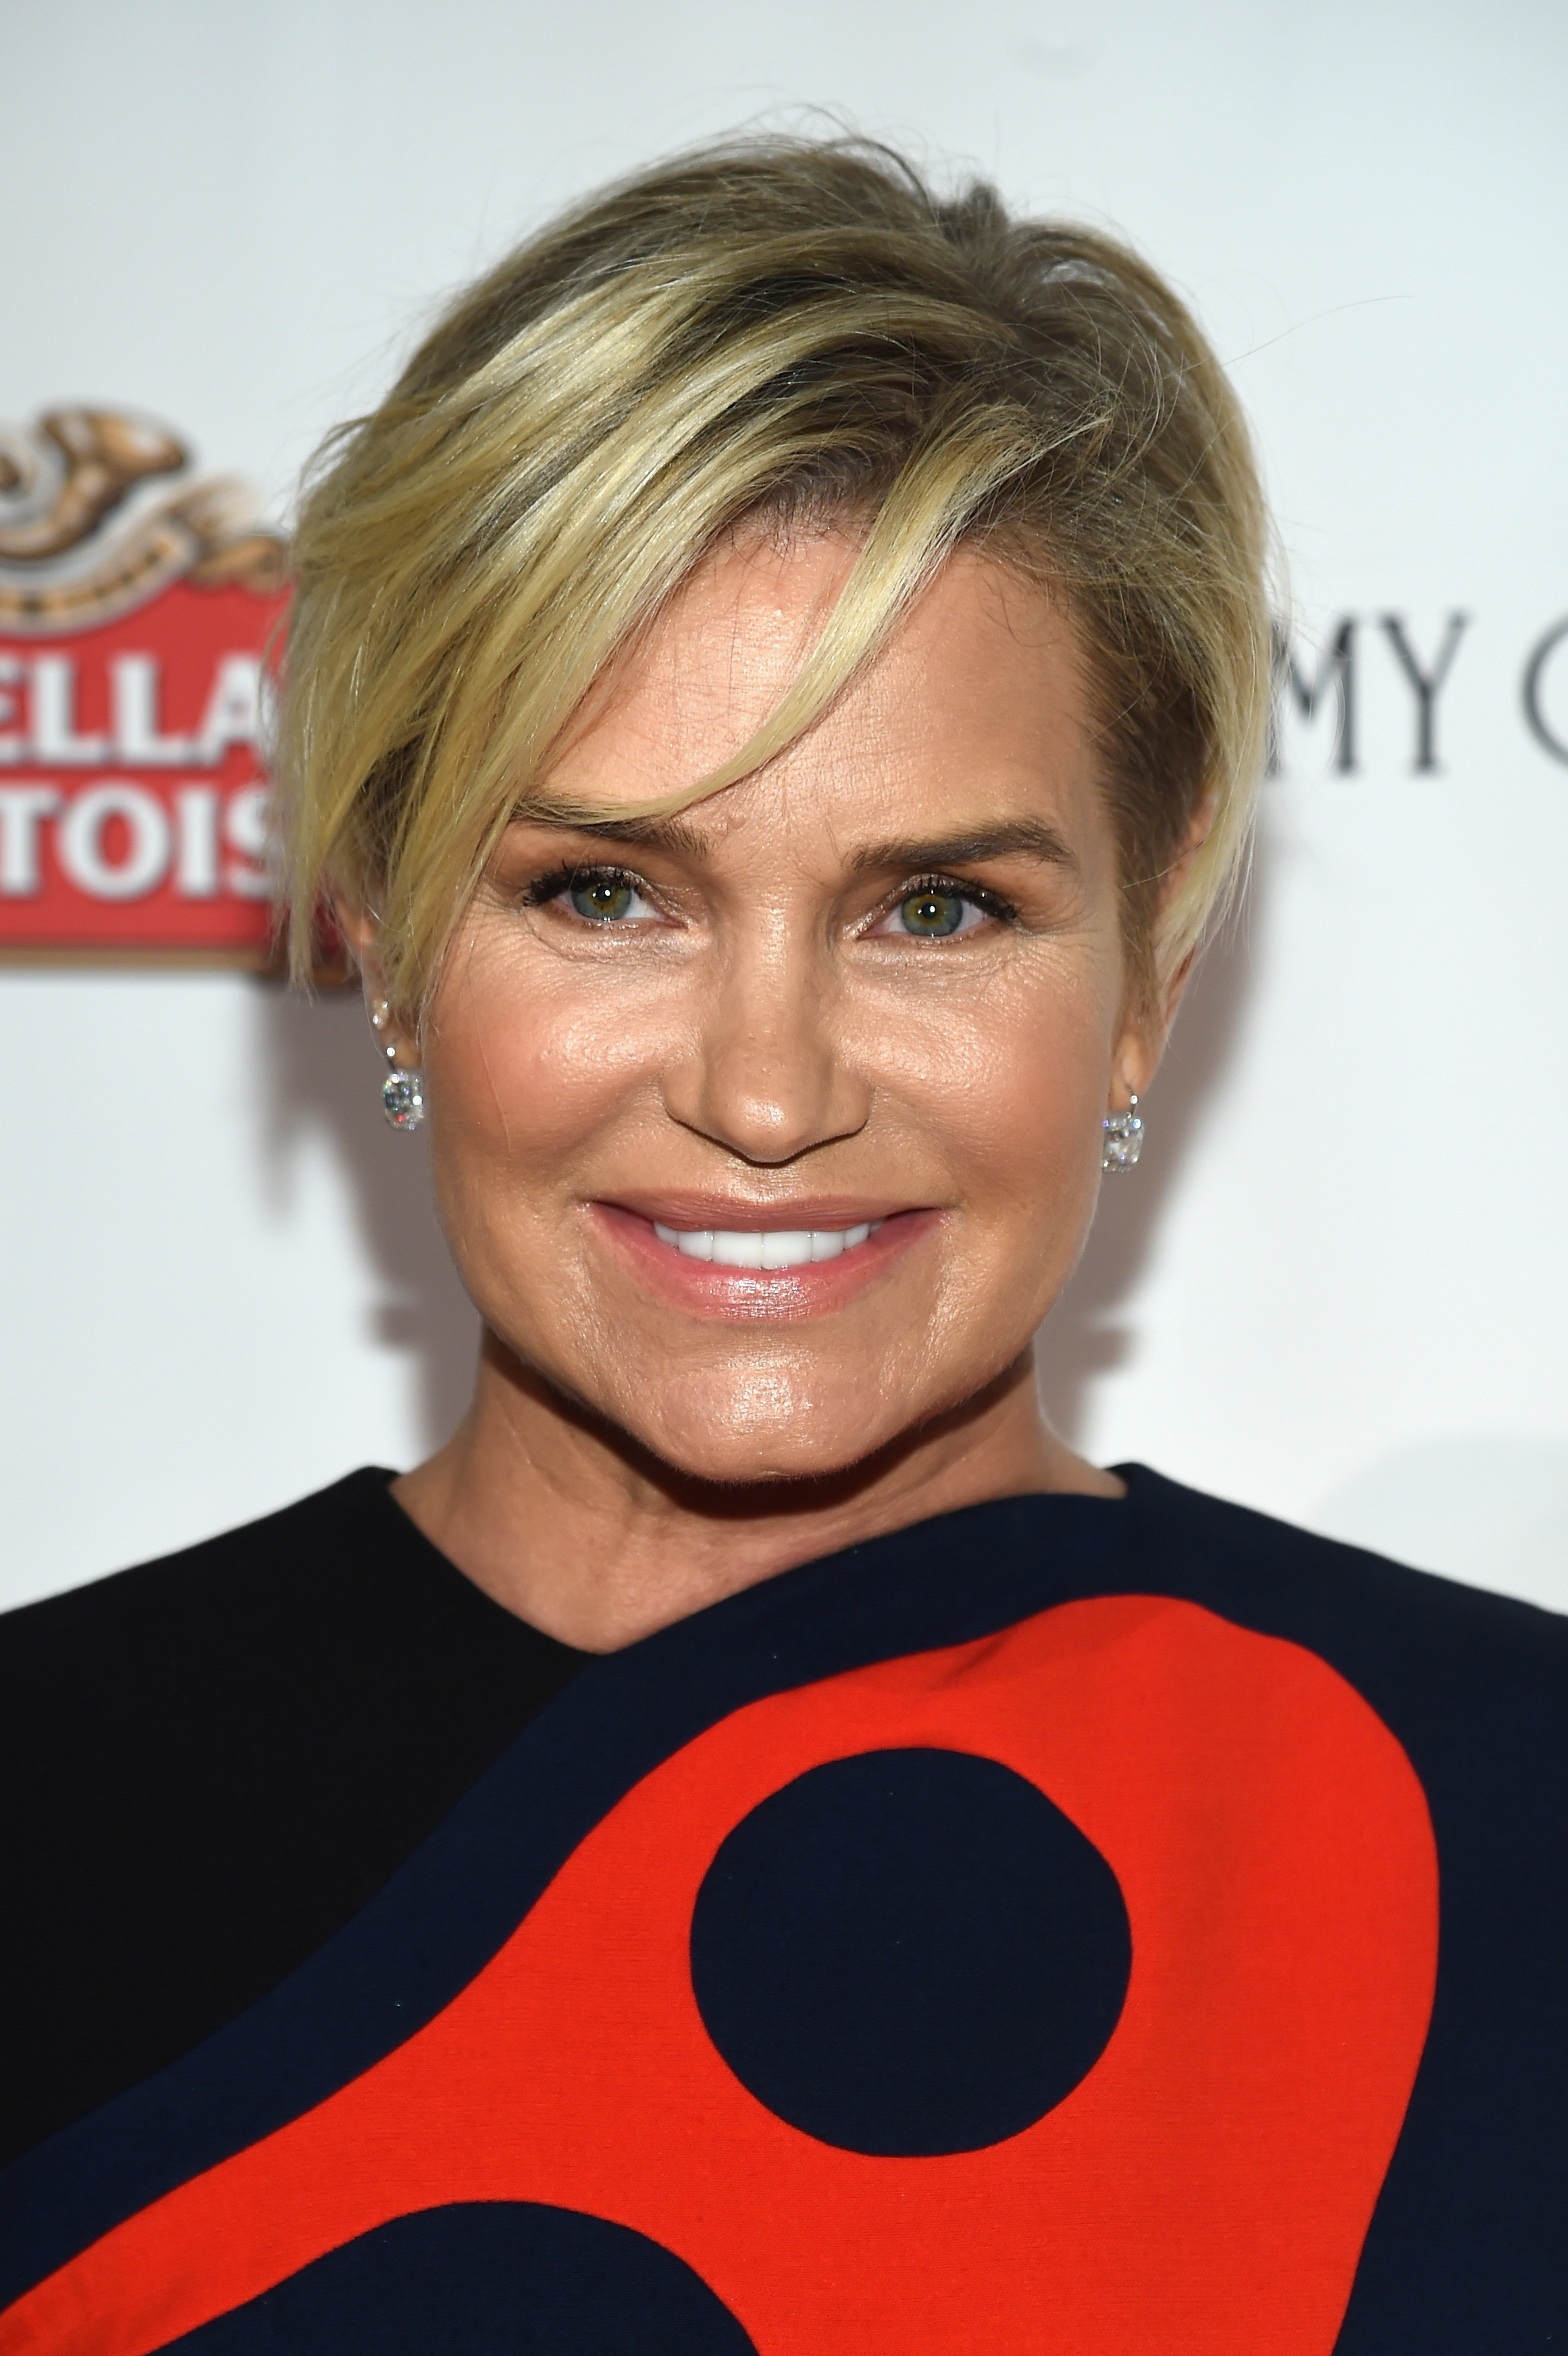 7 Yolanda Foster Quotes That Will Keep You Going On An Awful Day